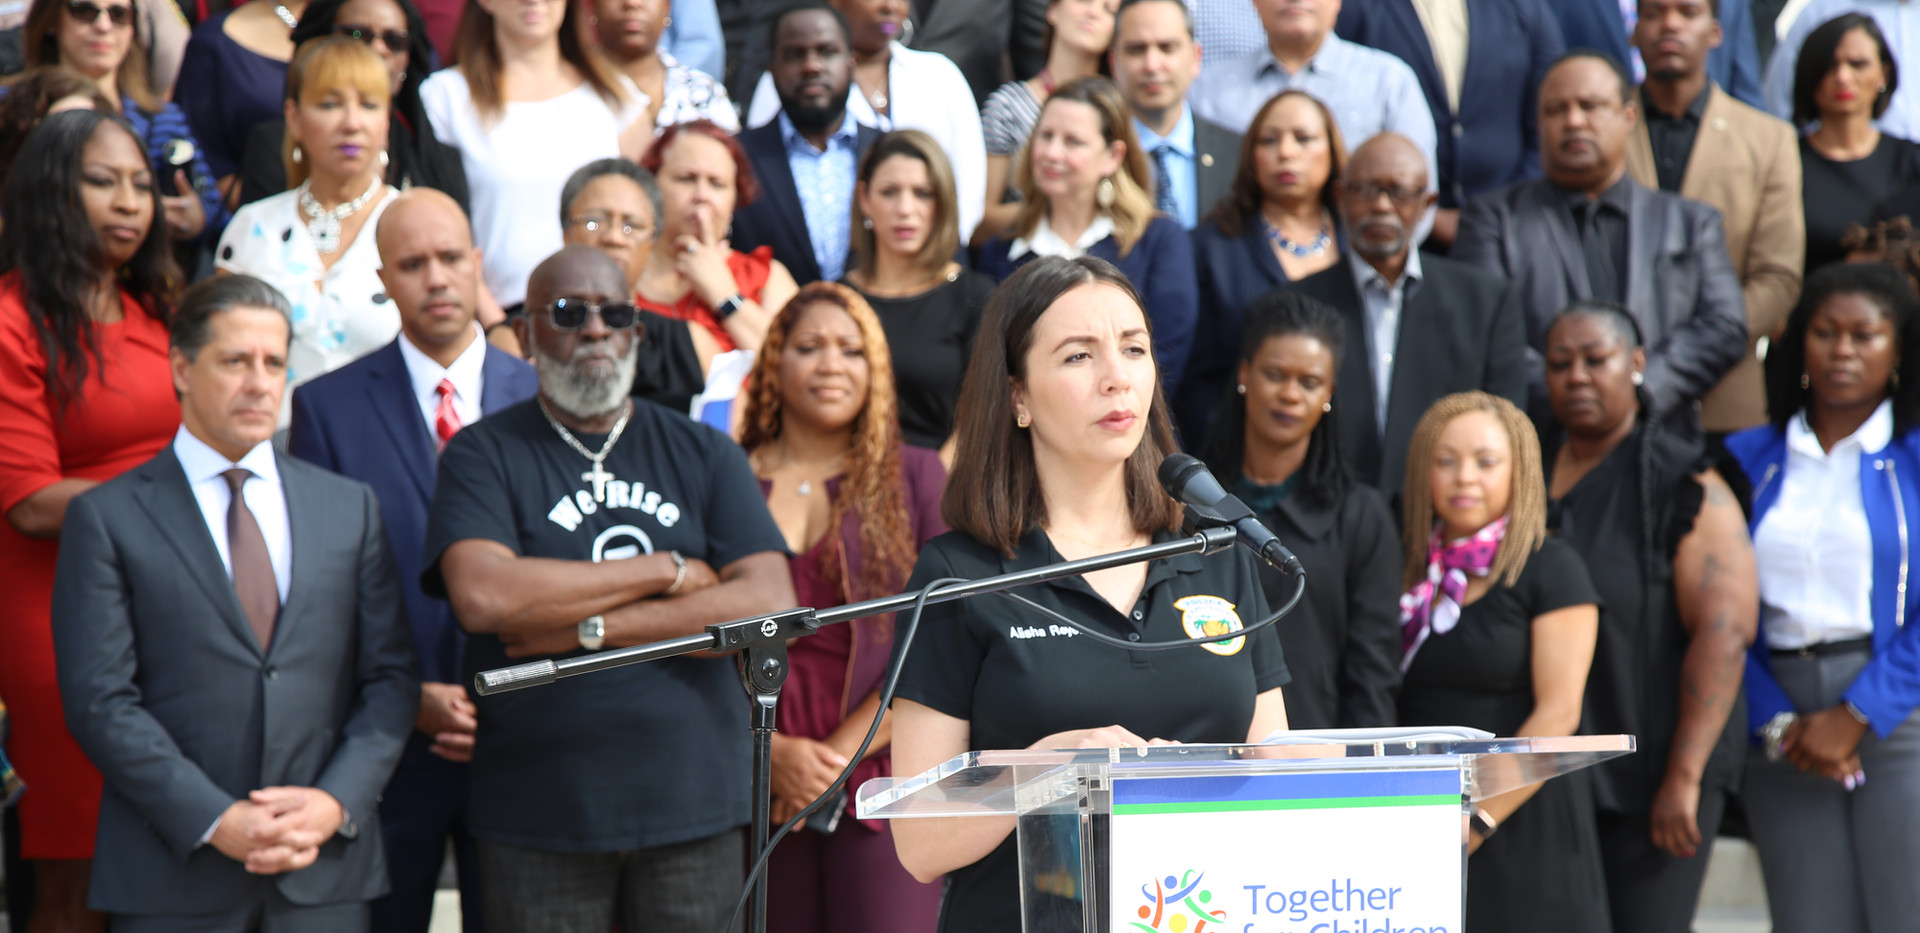 Together for Children Launch Announcement